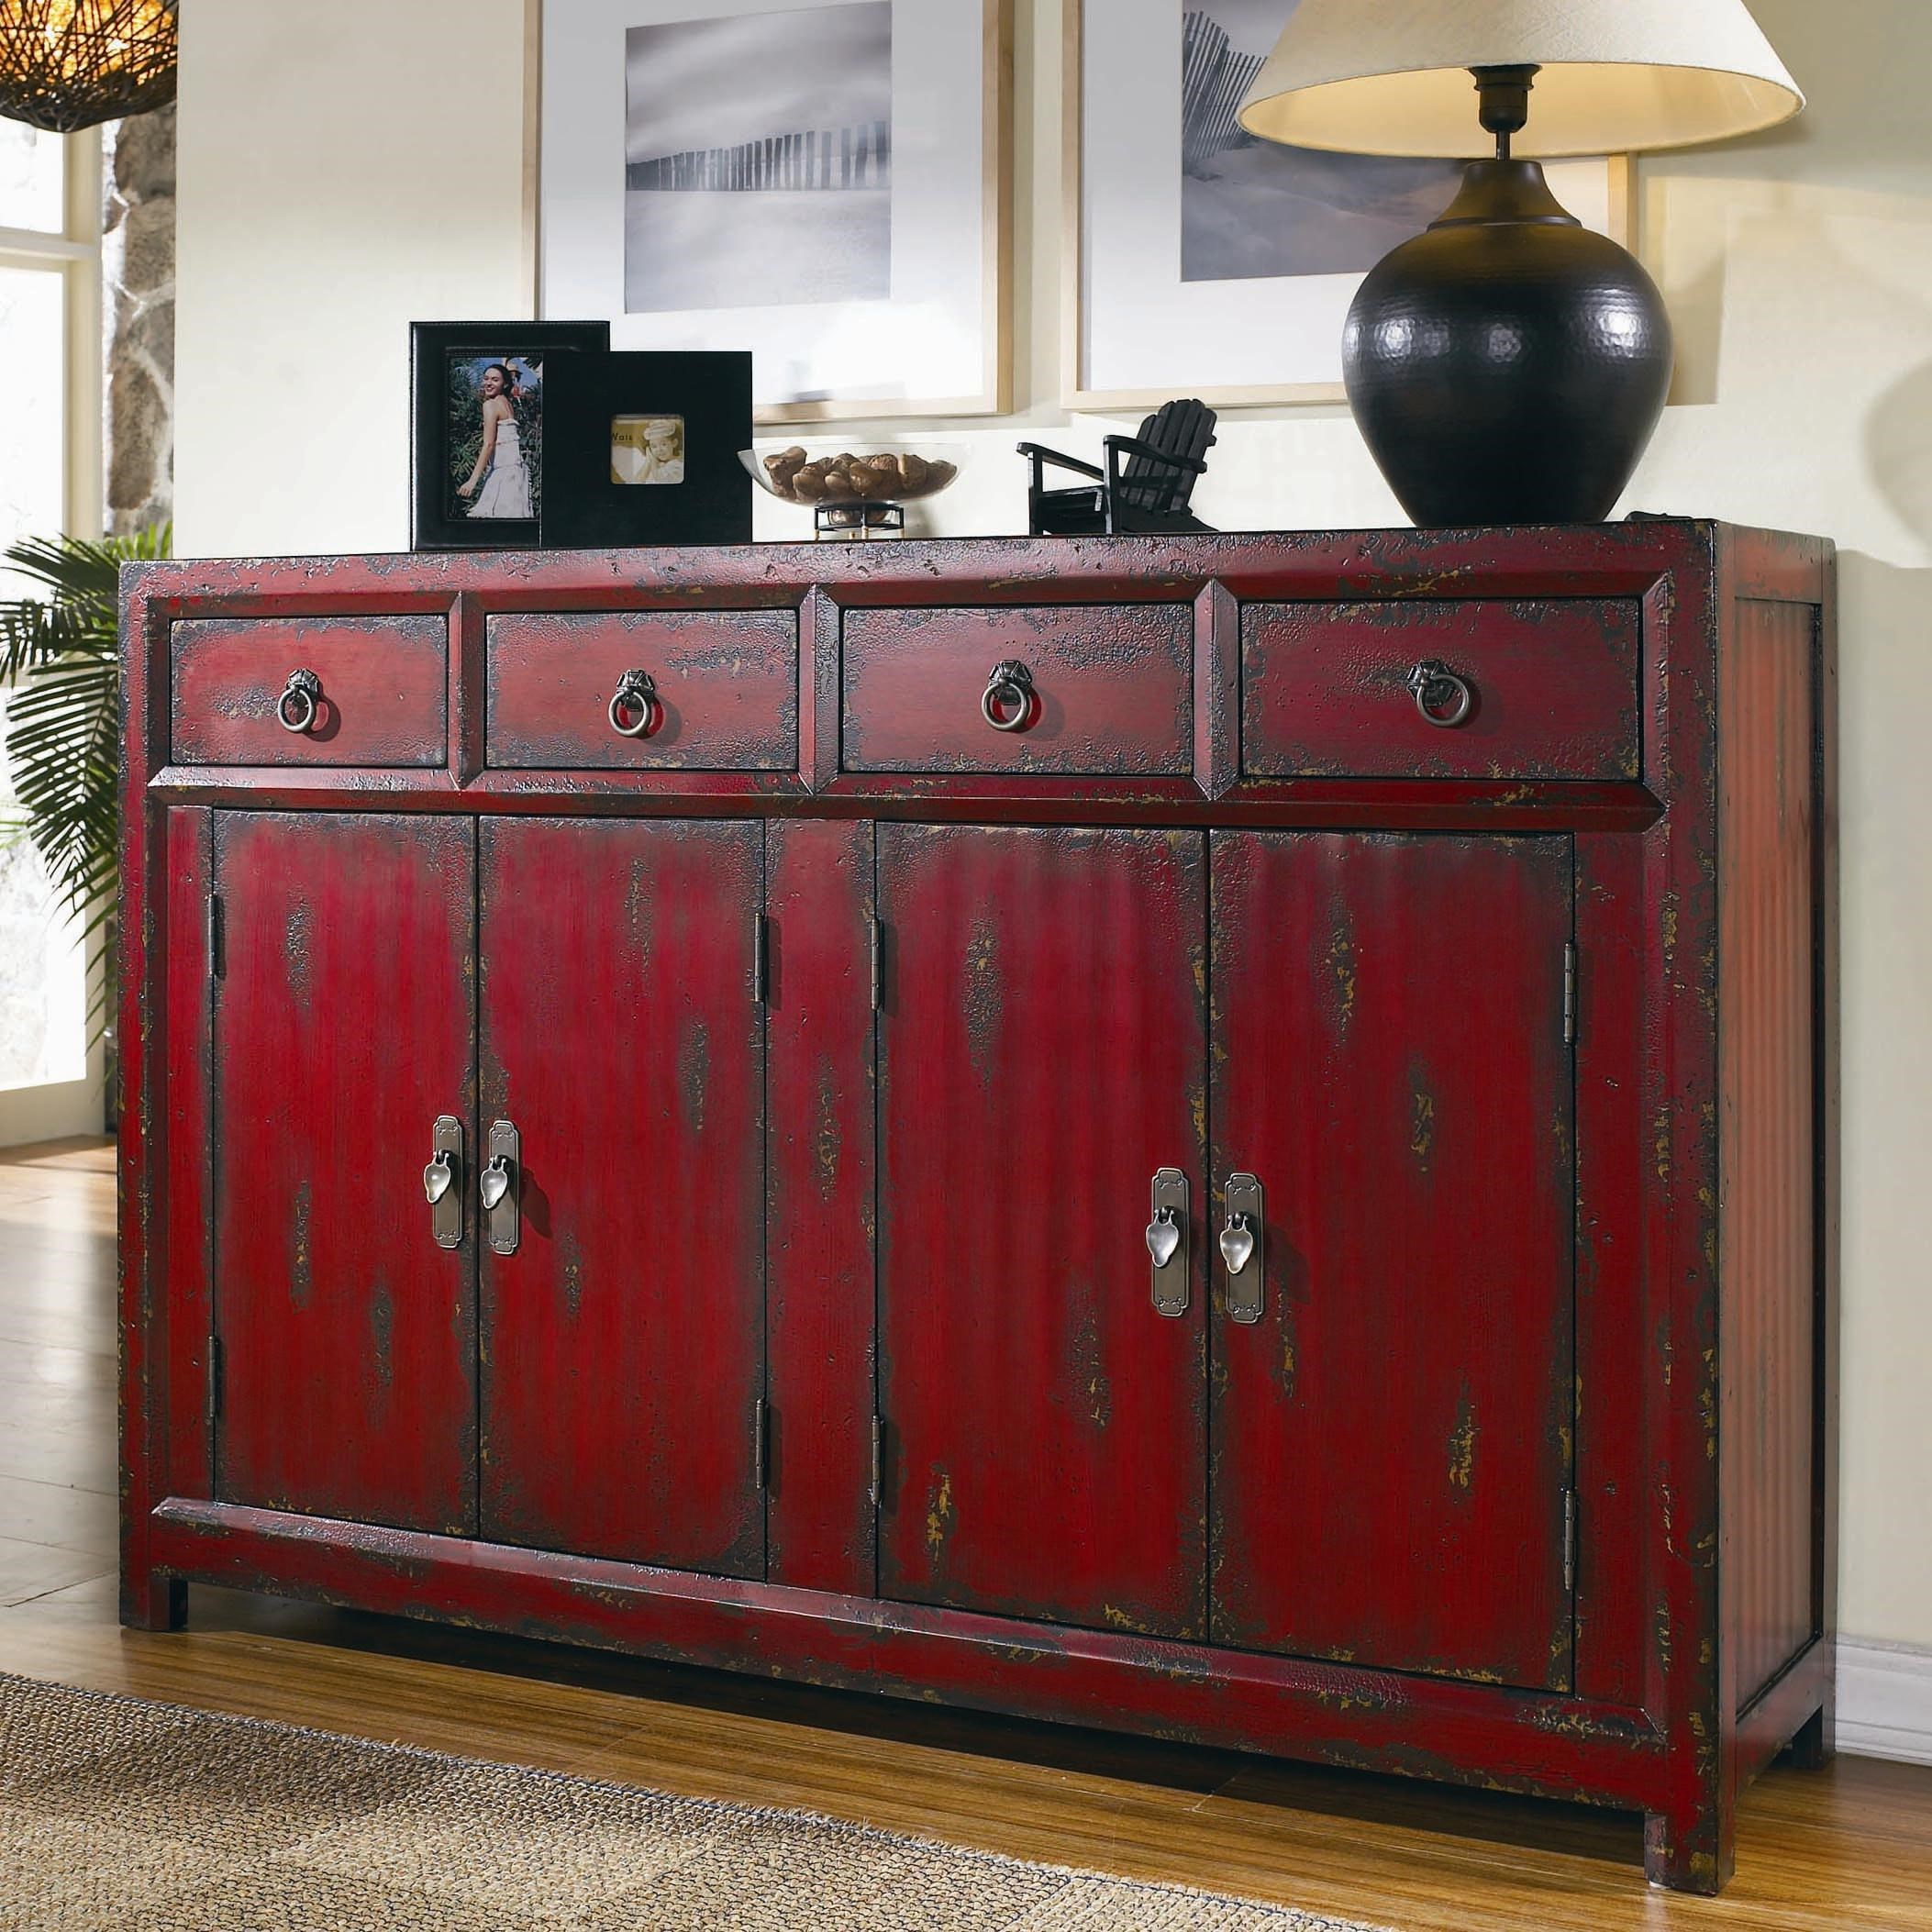 Beau Hooker Furniture Chests And ConsolesRed Asian Cabinet ...